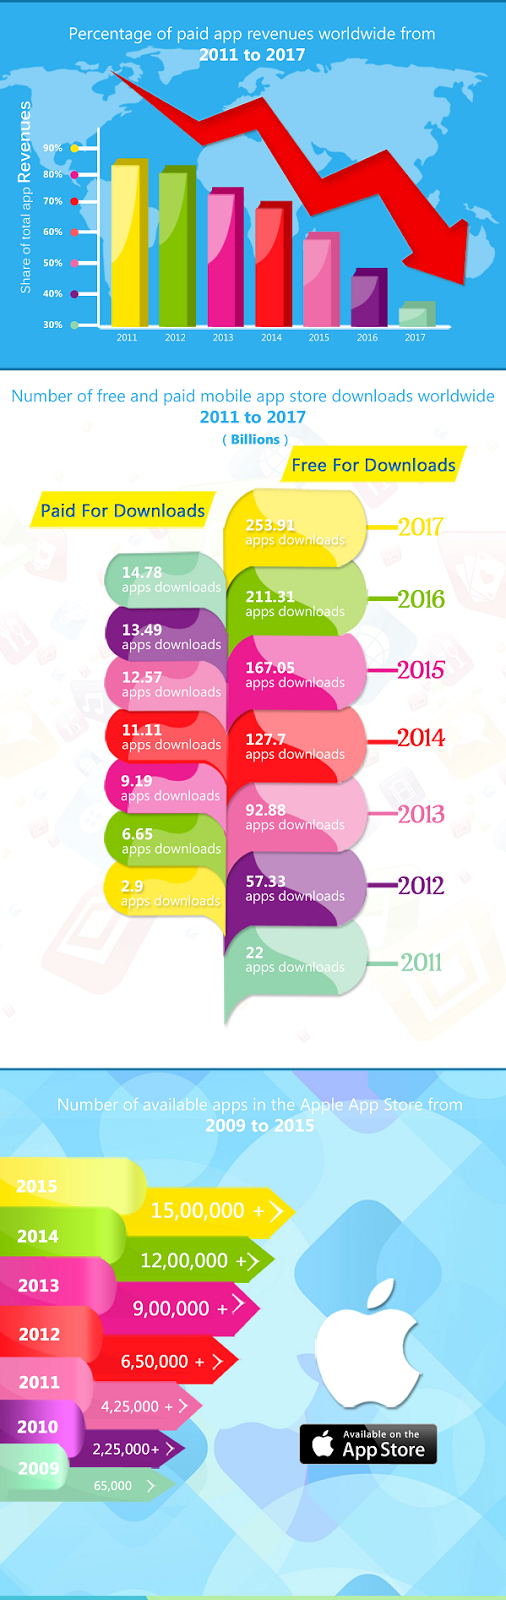 Mobile app statistics from 2009 to 2017